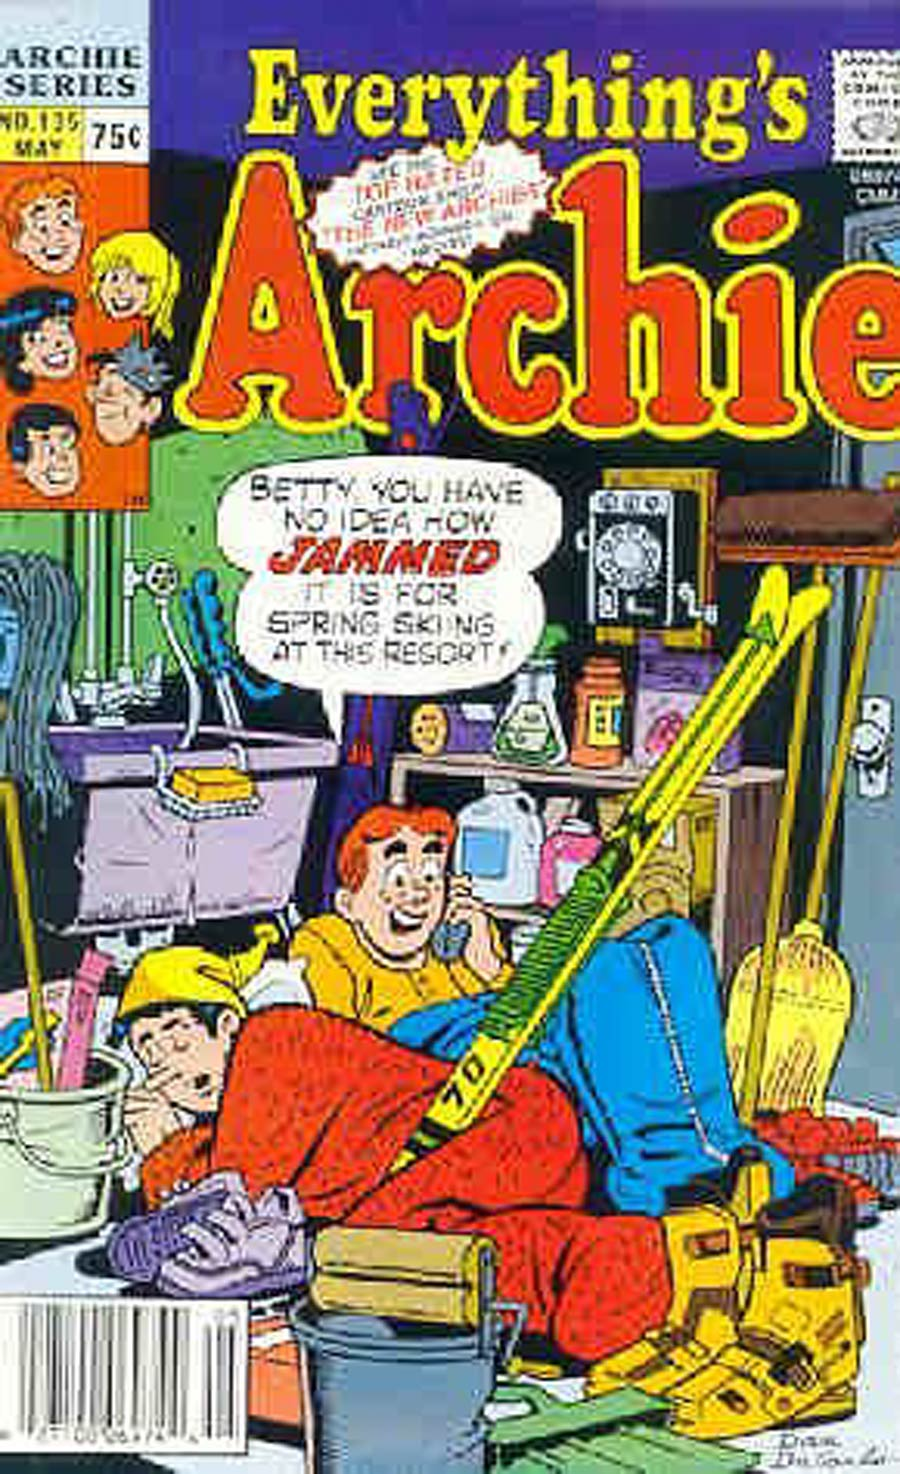 Everythings Archie #135